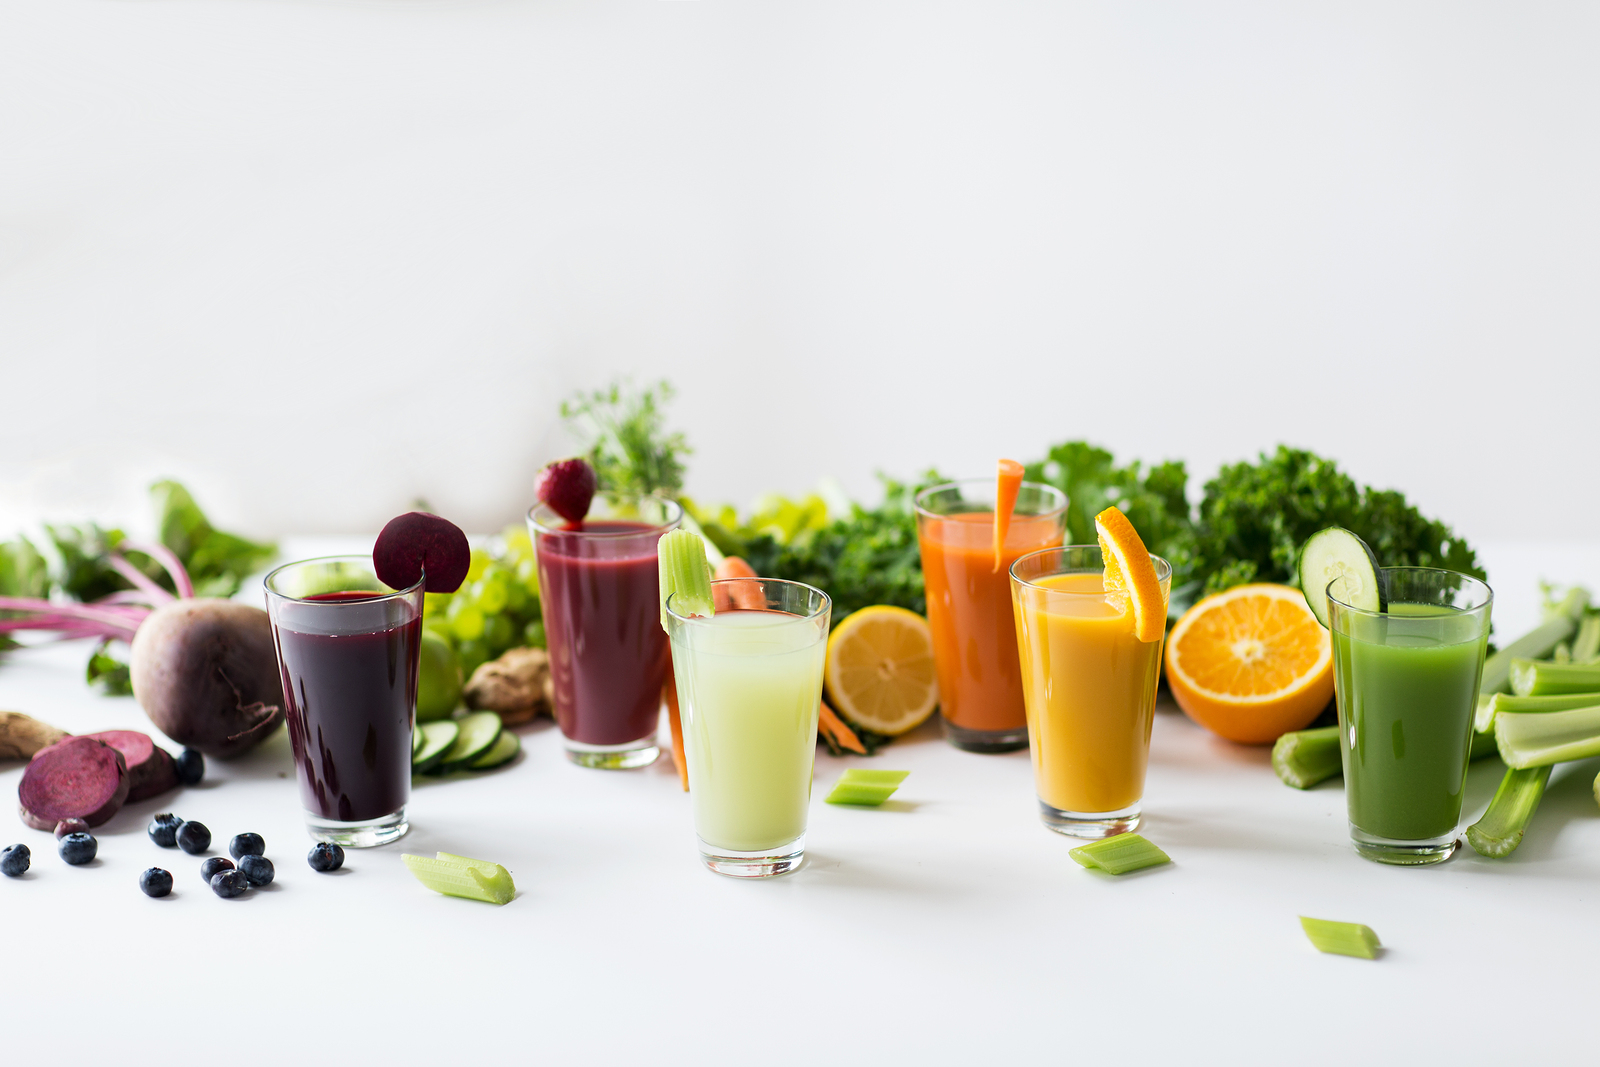 healthy eating, drinks, diet and detox concept - glasses with different fruit or vegetable juices and food on table